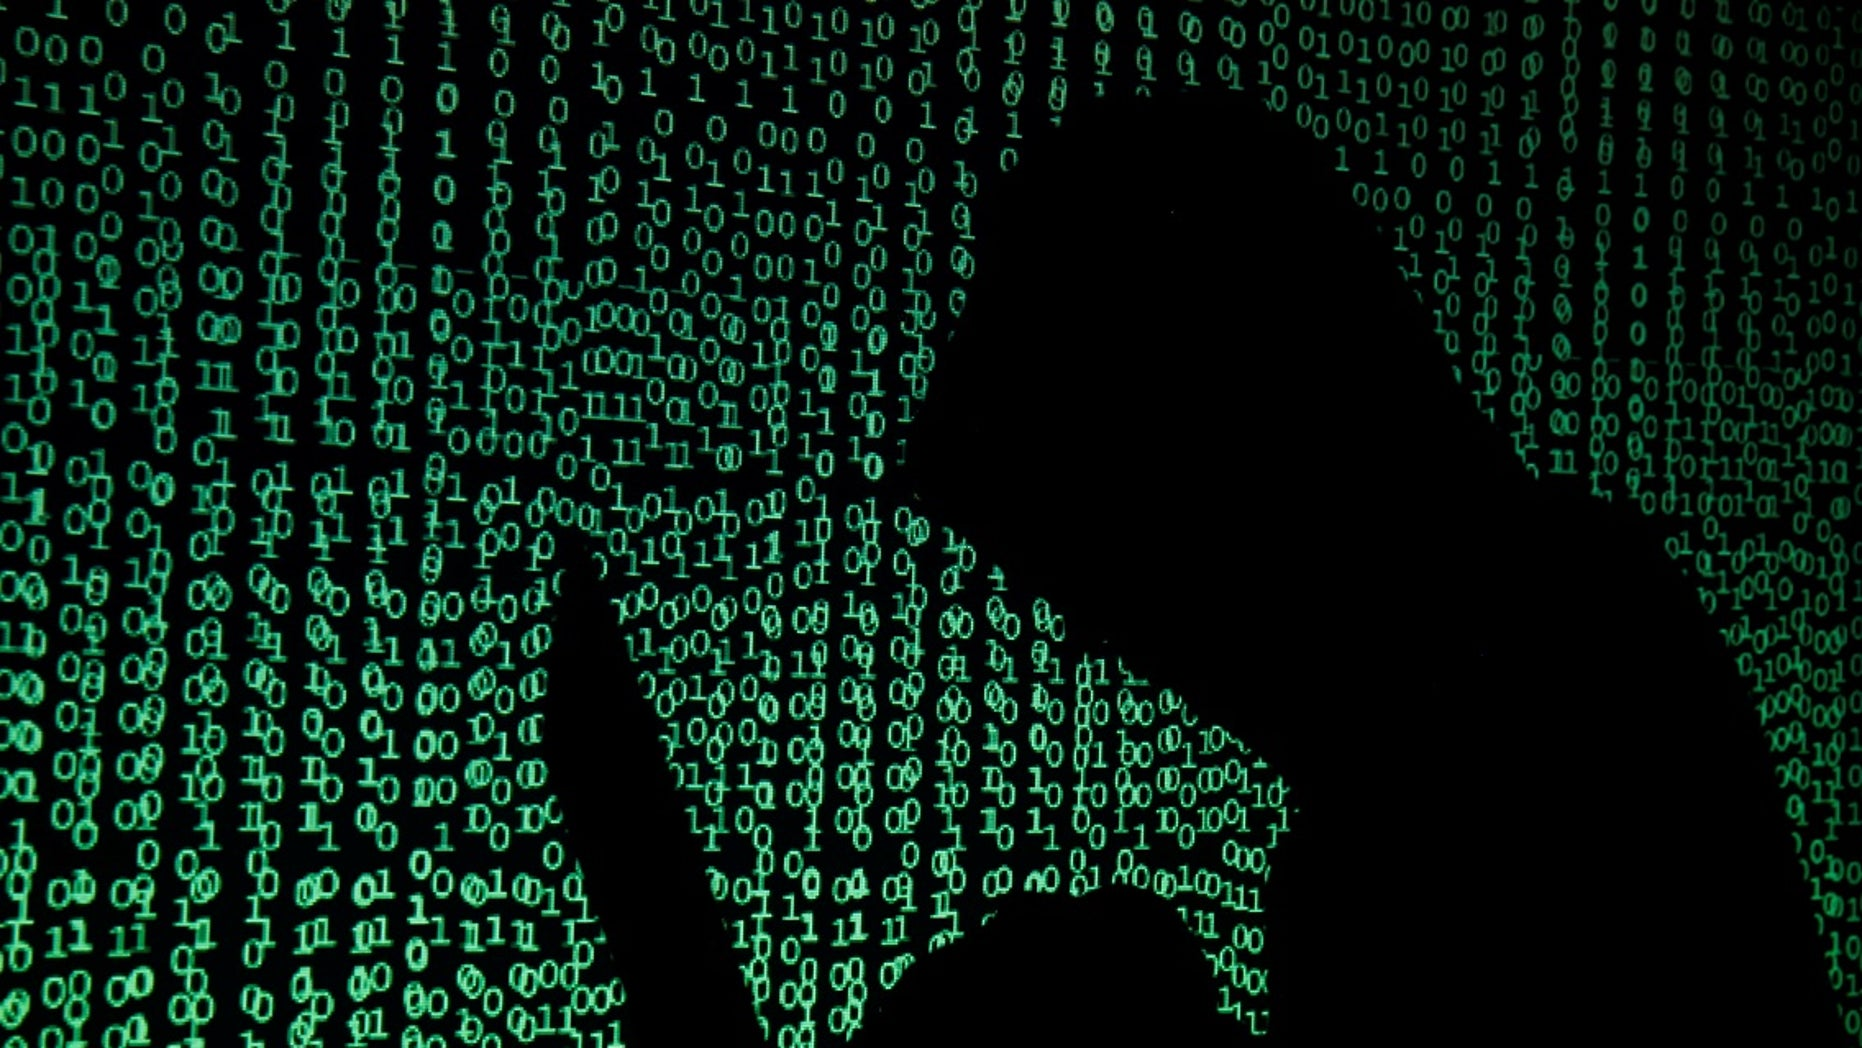 Capitalizing on spying tools believed to have been developed by the U.S. National Security Agency, hackers staged a cyber assault with a self-spreading malware that has infected tens of thousands of computers in nearly 100 countries.